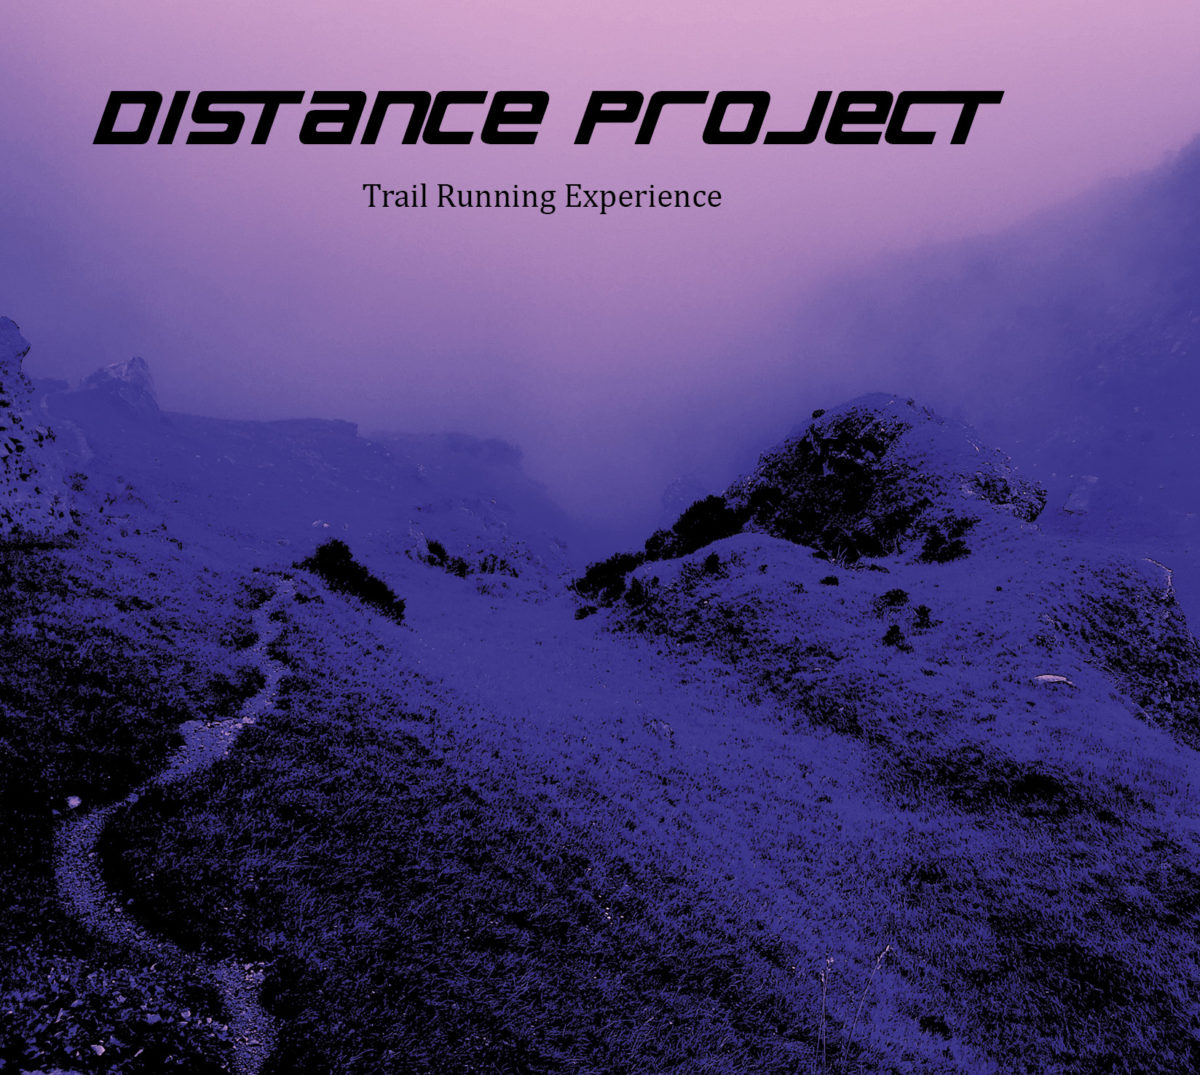 Distance Project – Trail Running Experience